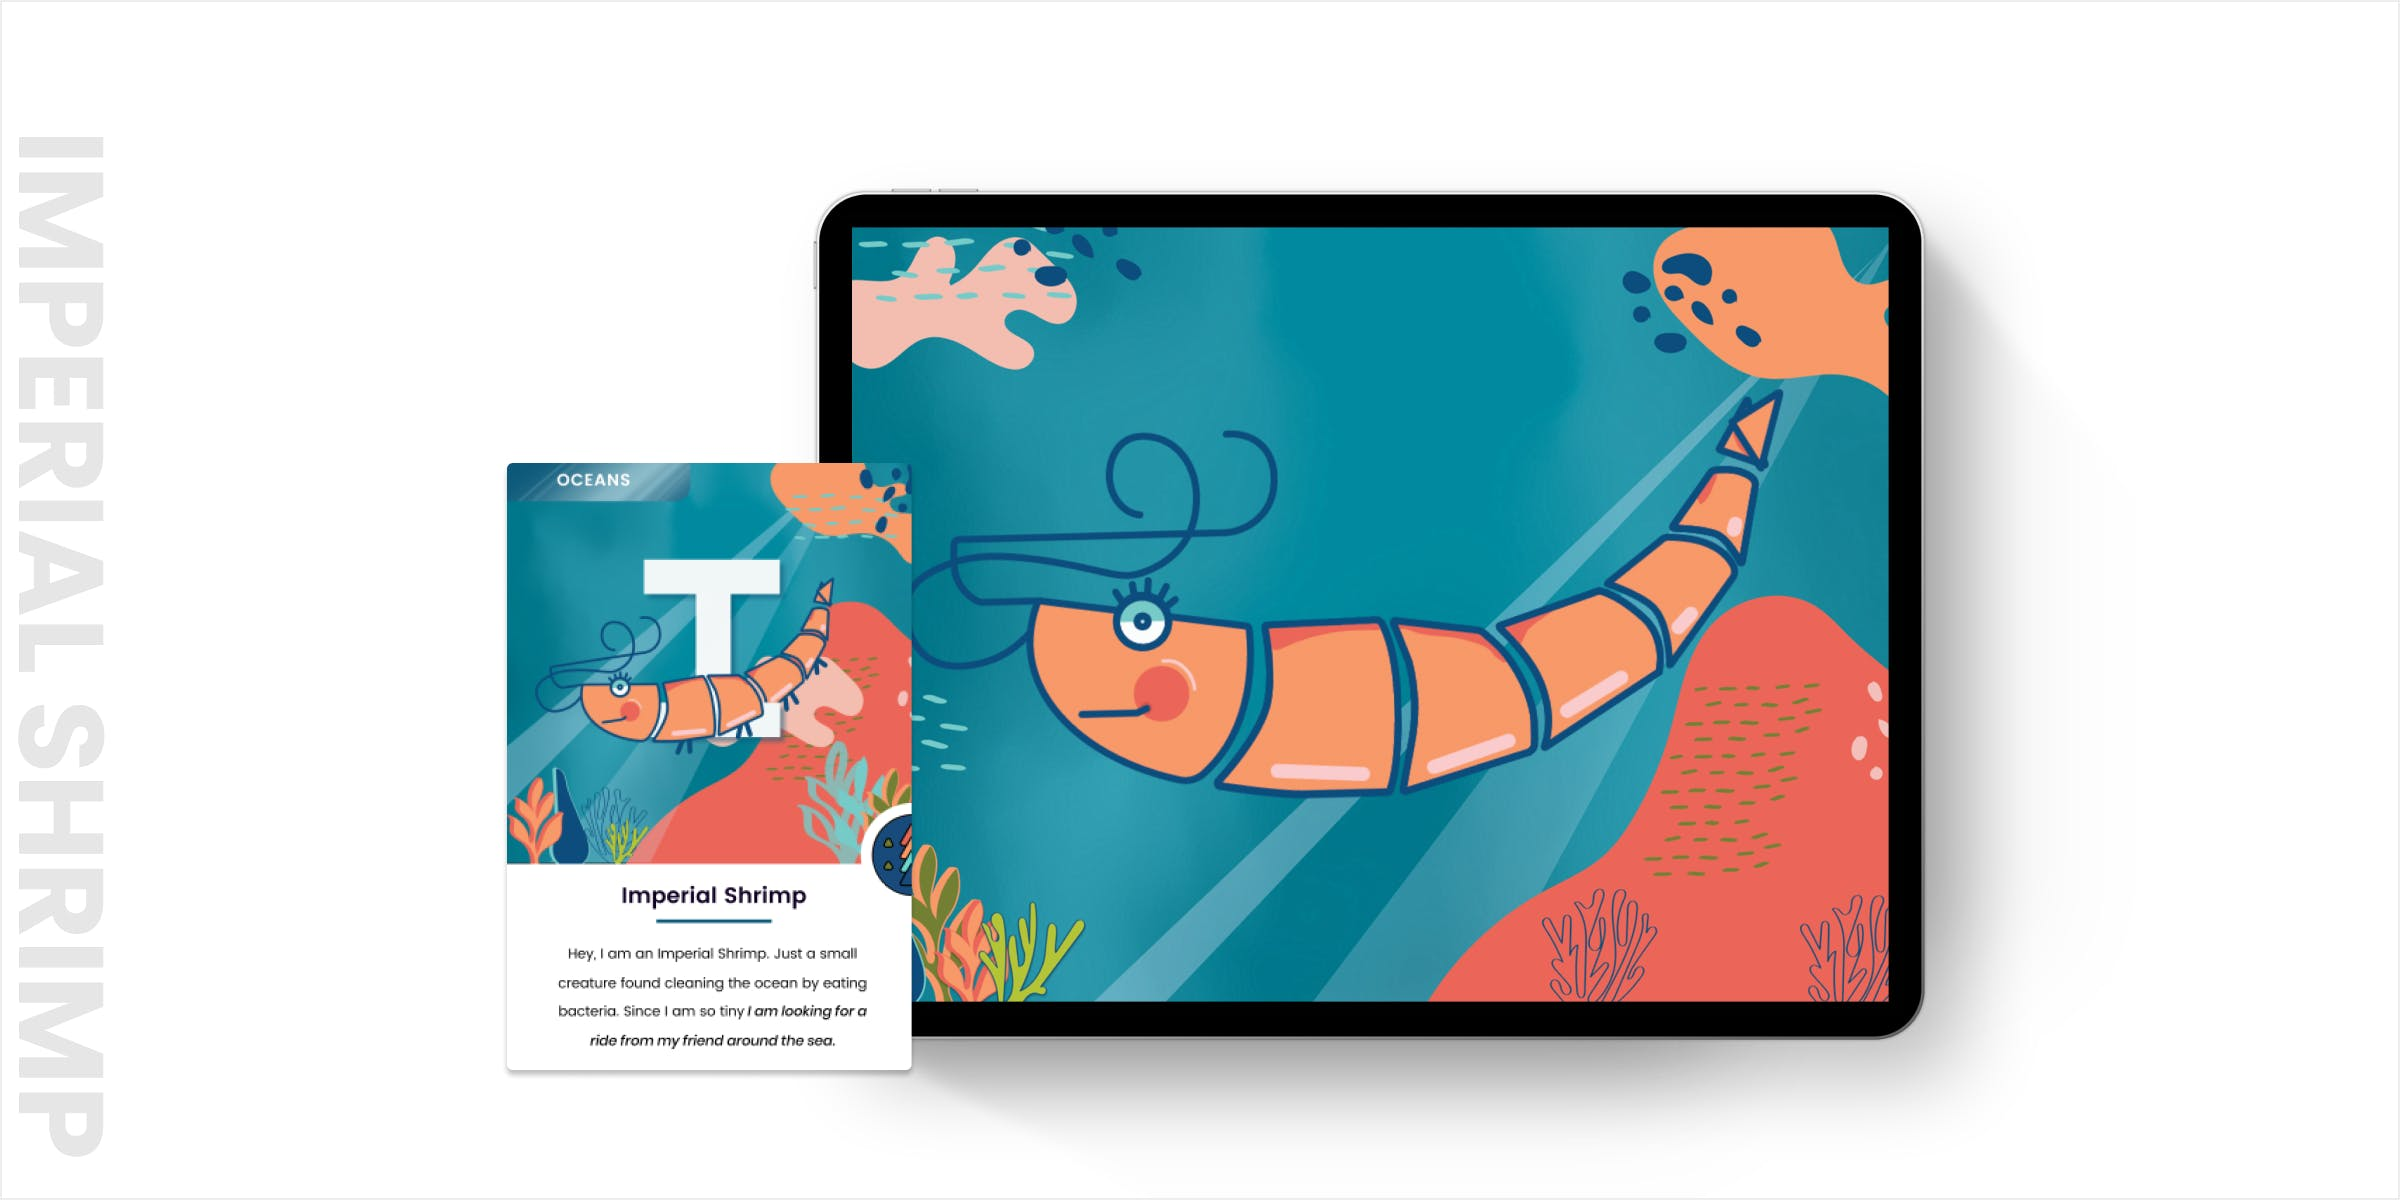 Mockup of Imperial interaction in an iPad and printed card next to it. Imperial Shrimp is happy swimming in a blue ocean with pink coral.